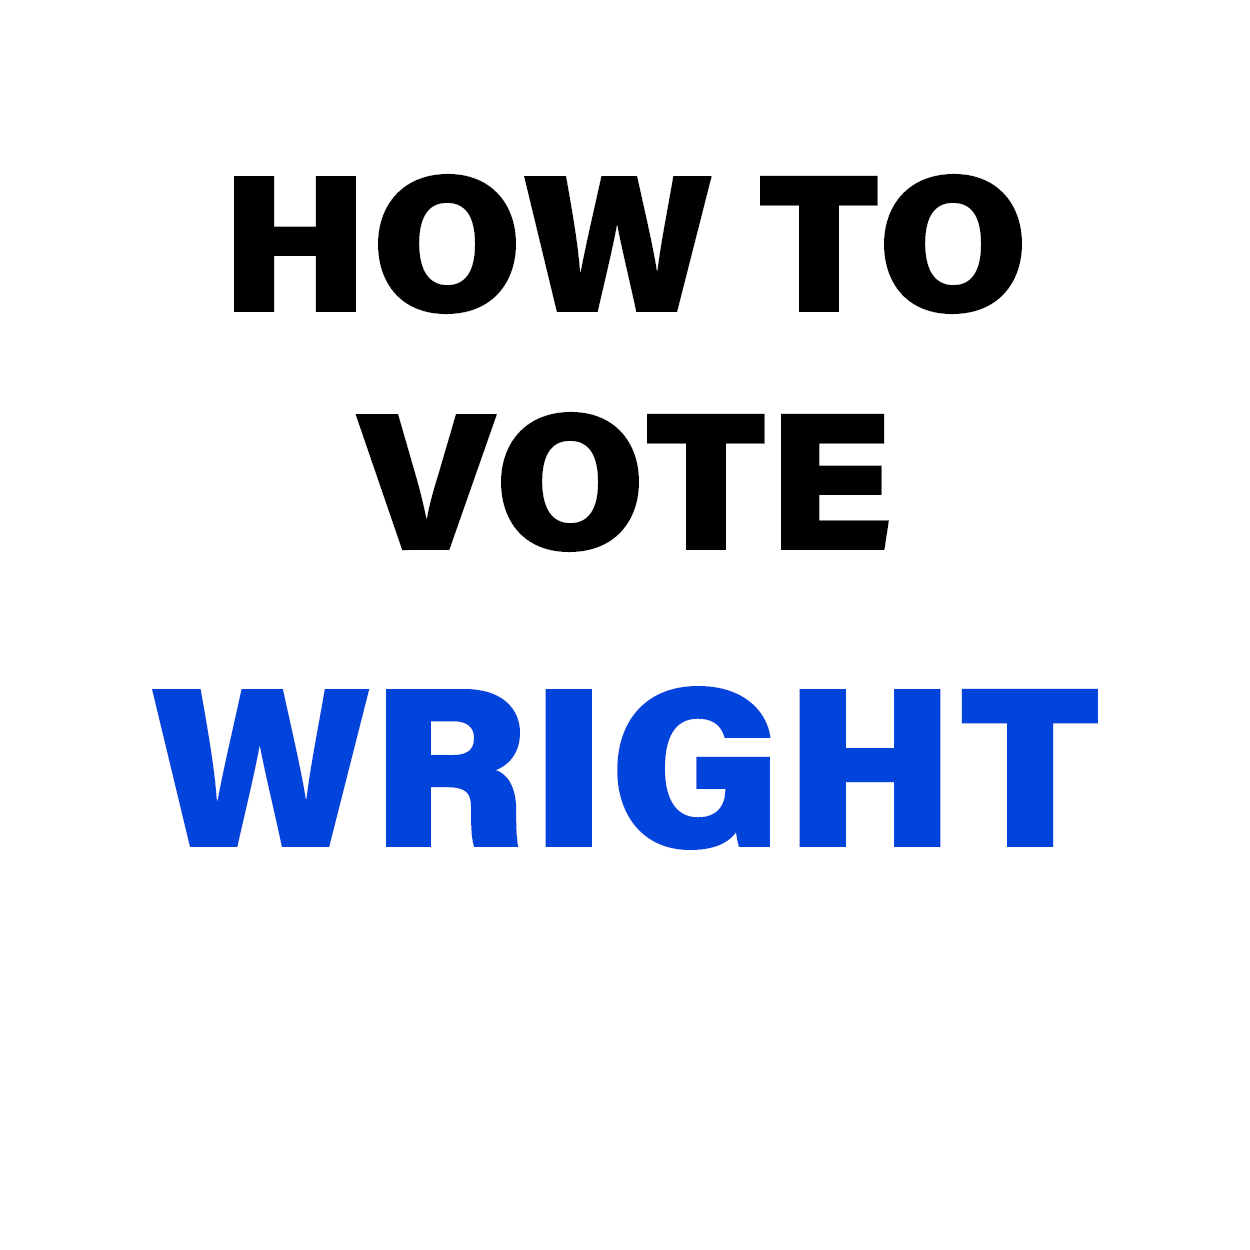 WRIGHT.png